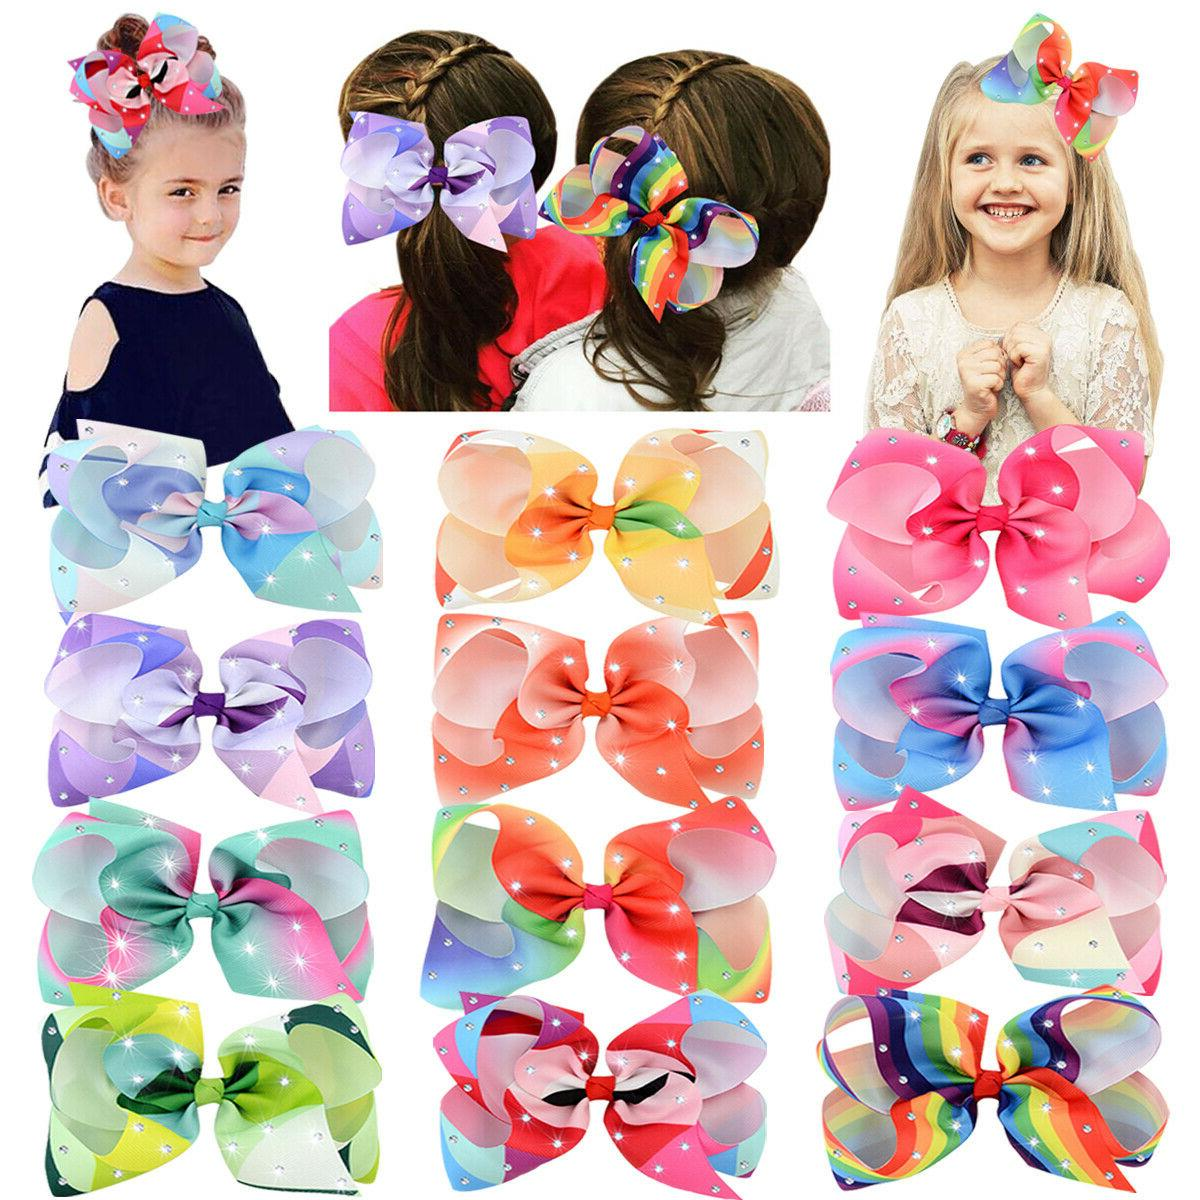 12pcs 6 big glitter hair bow clips